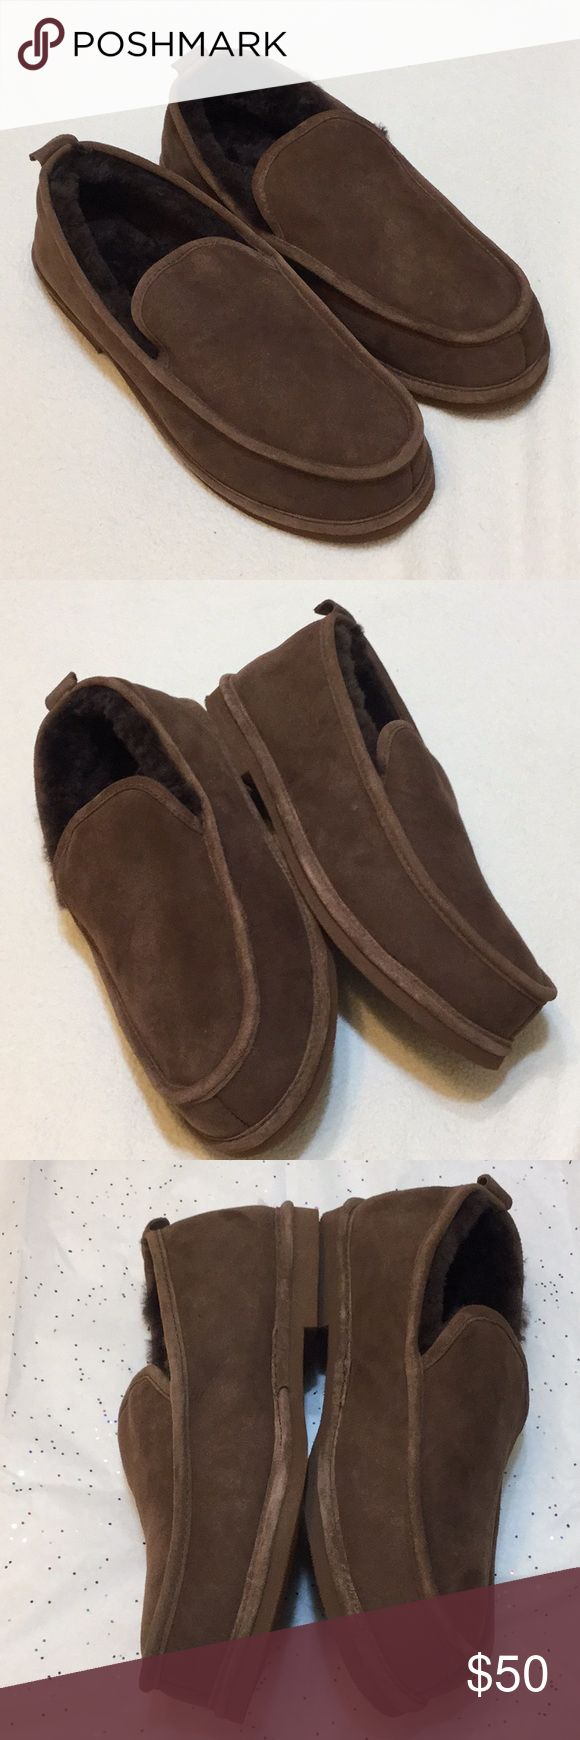 L.L.Bean Wicked Good Slippers Chocolate Brown 12M Men's L L Bean Chocolate Brown Wicked Good Slip-On Shearling Sheepskin Slippers Sz 12 Medium   Like New Condition   Check Out My Other Items   Thank You For Looking L.L. Bean Shoes Loafers & Slip-Ons